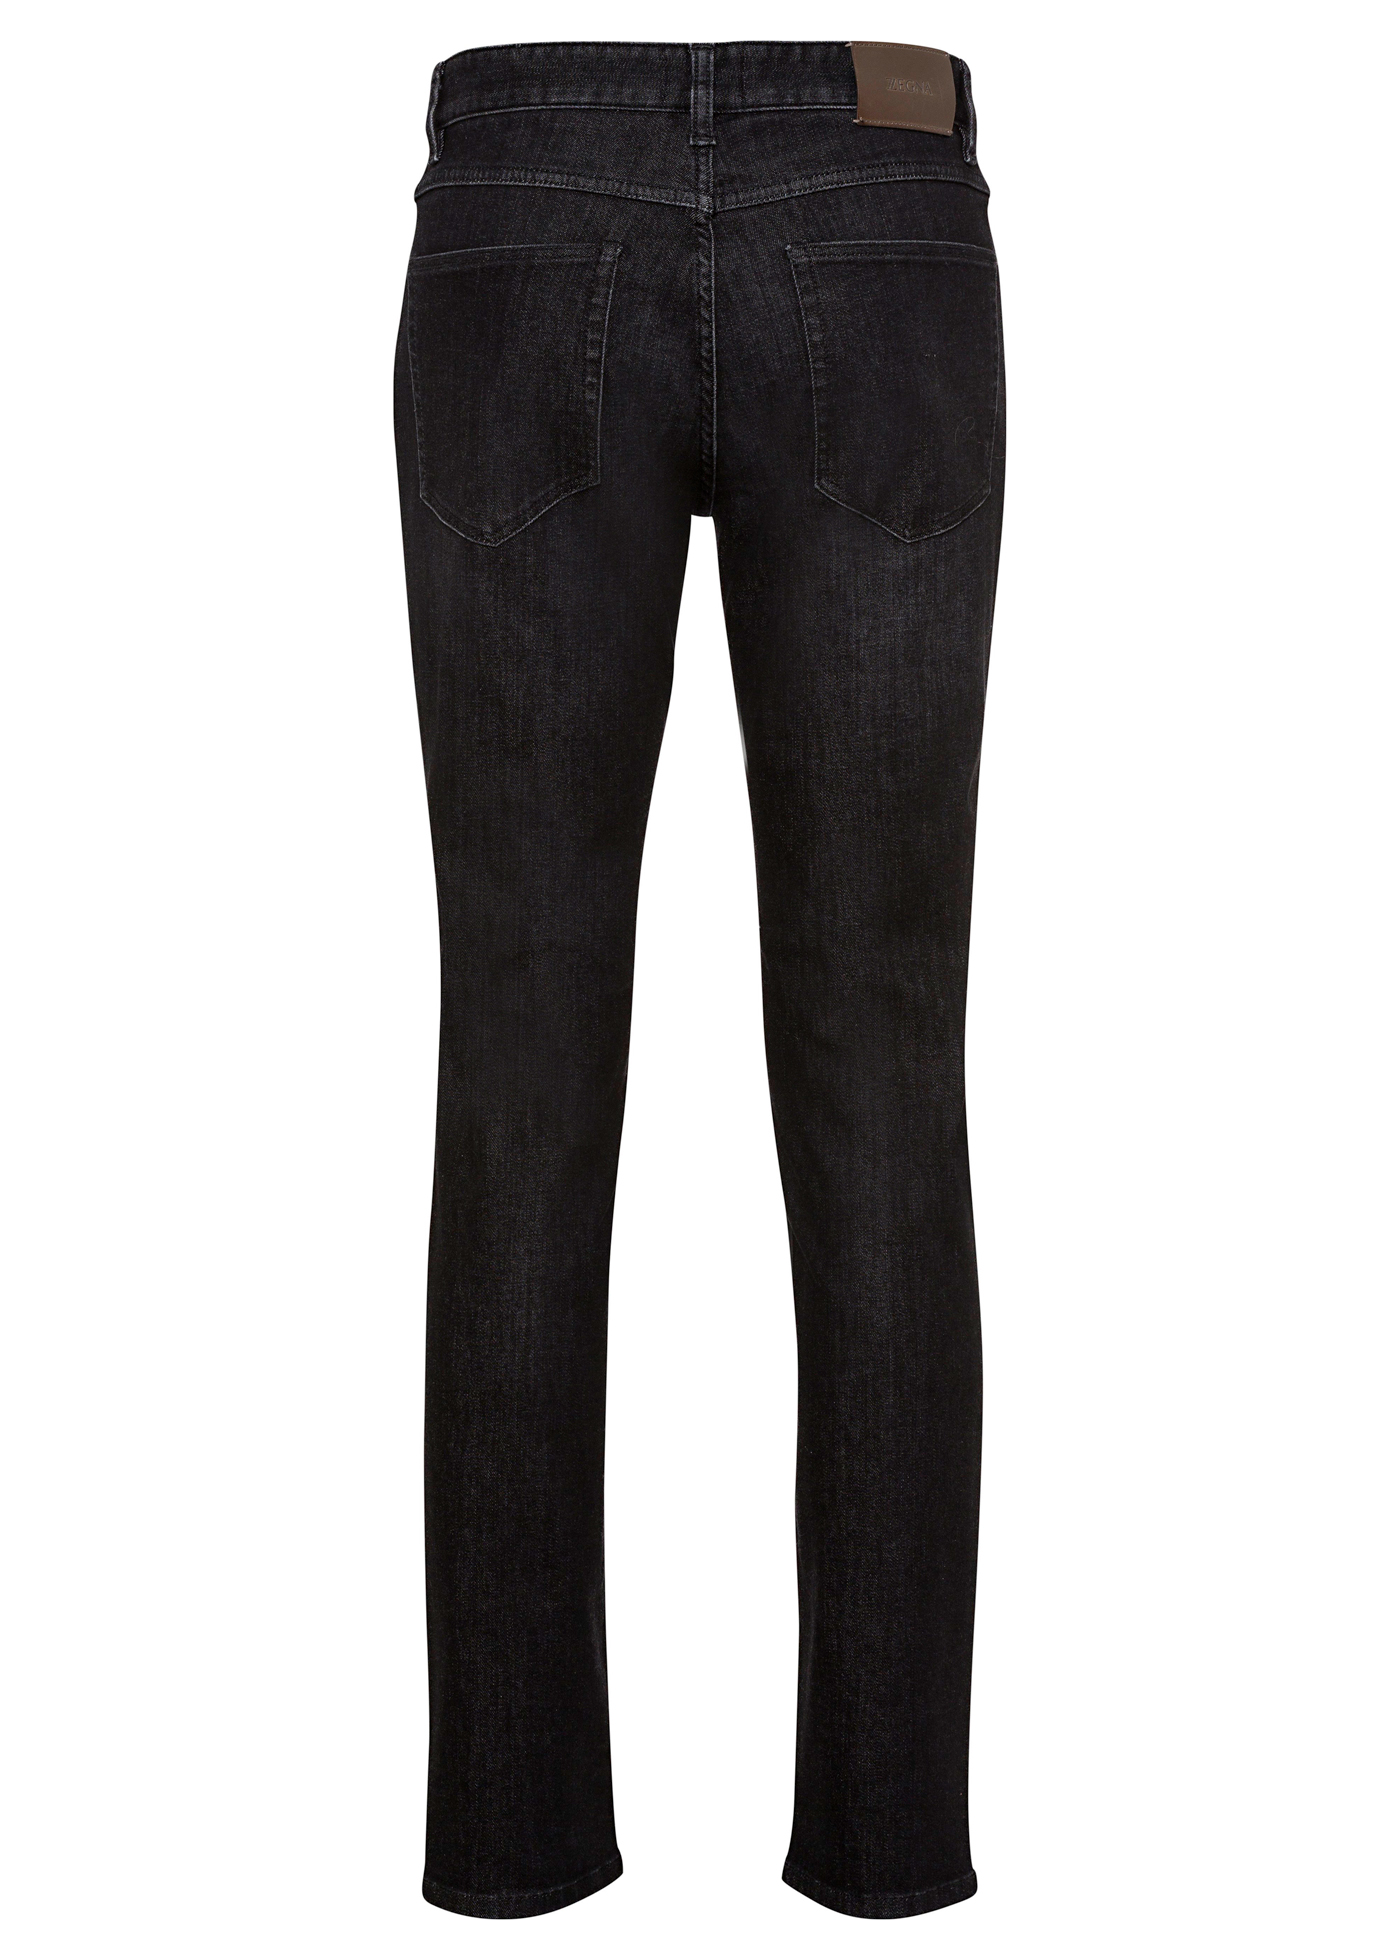 LUXE TWILL BLACK DENIM image number 1